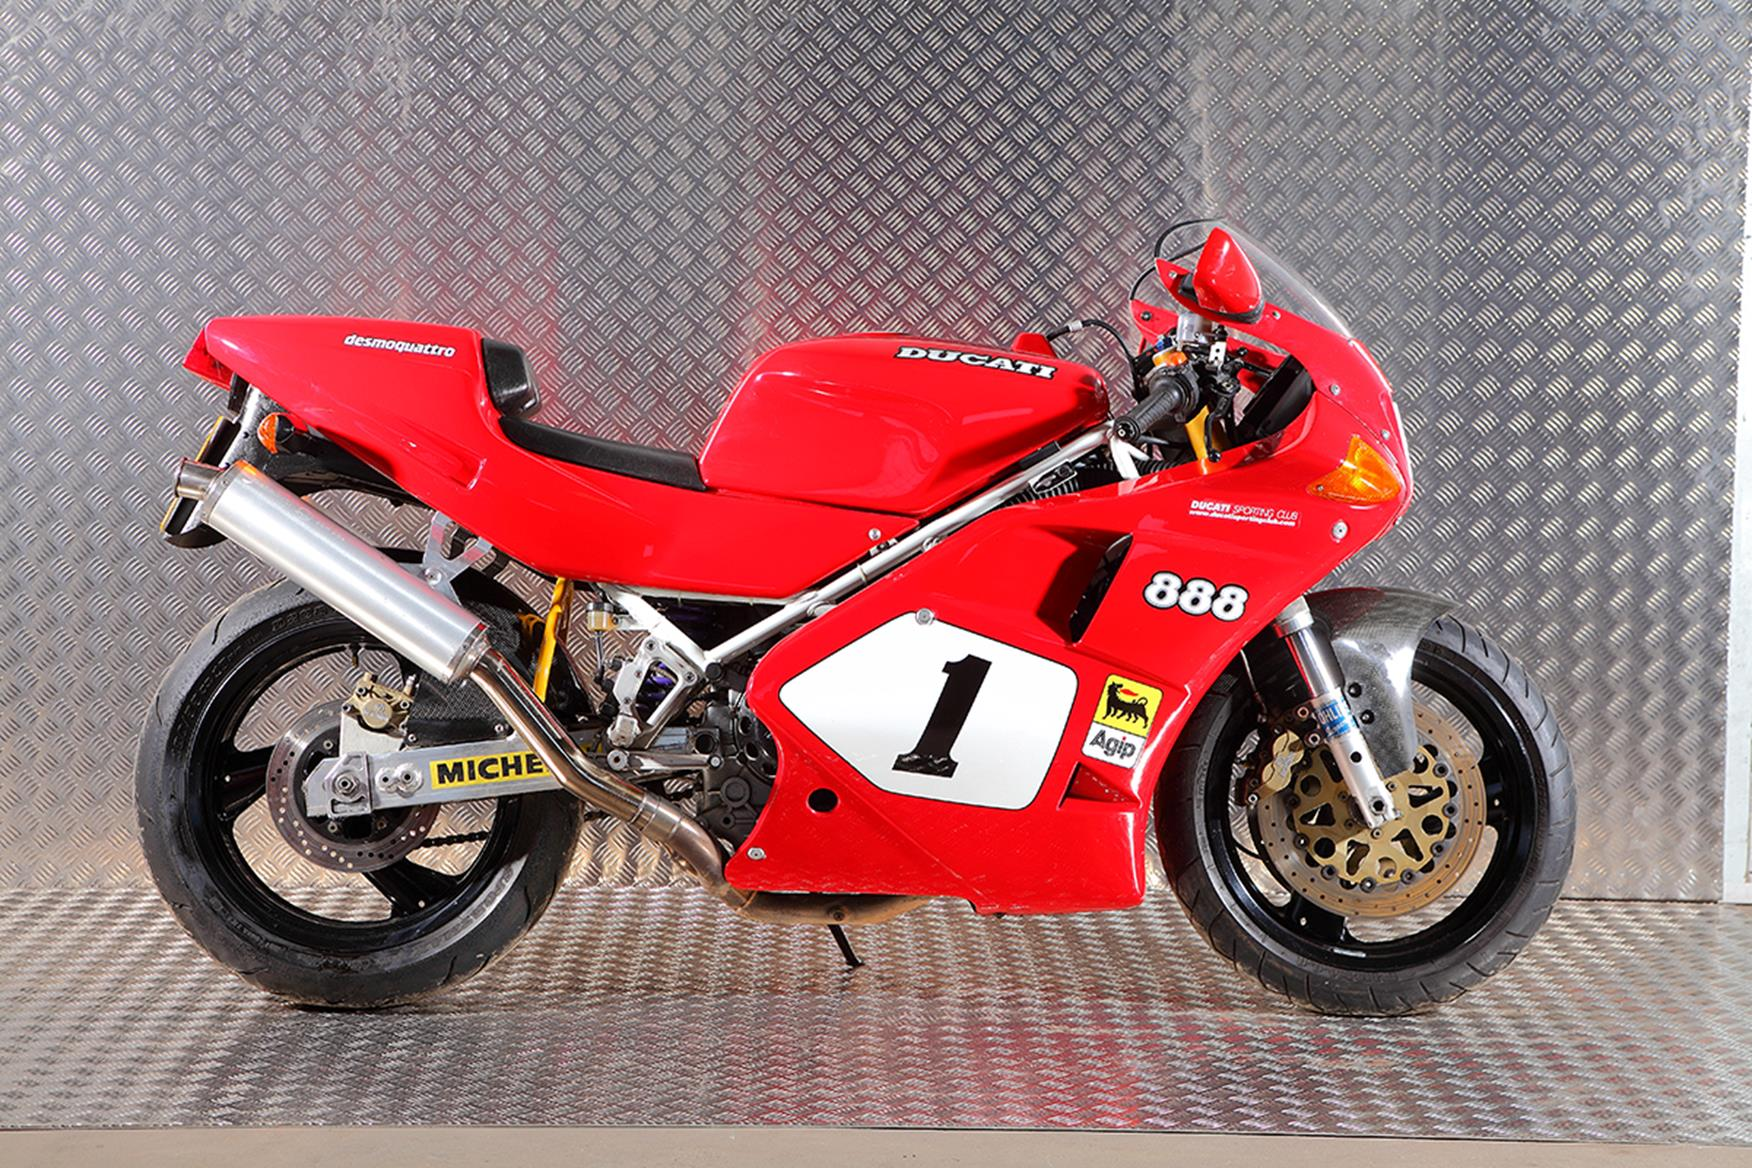 Ducati 888 Wiring Diagram Years Of The Mcn 1200x800